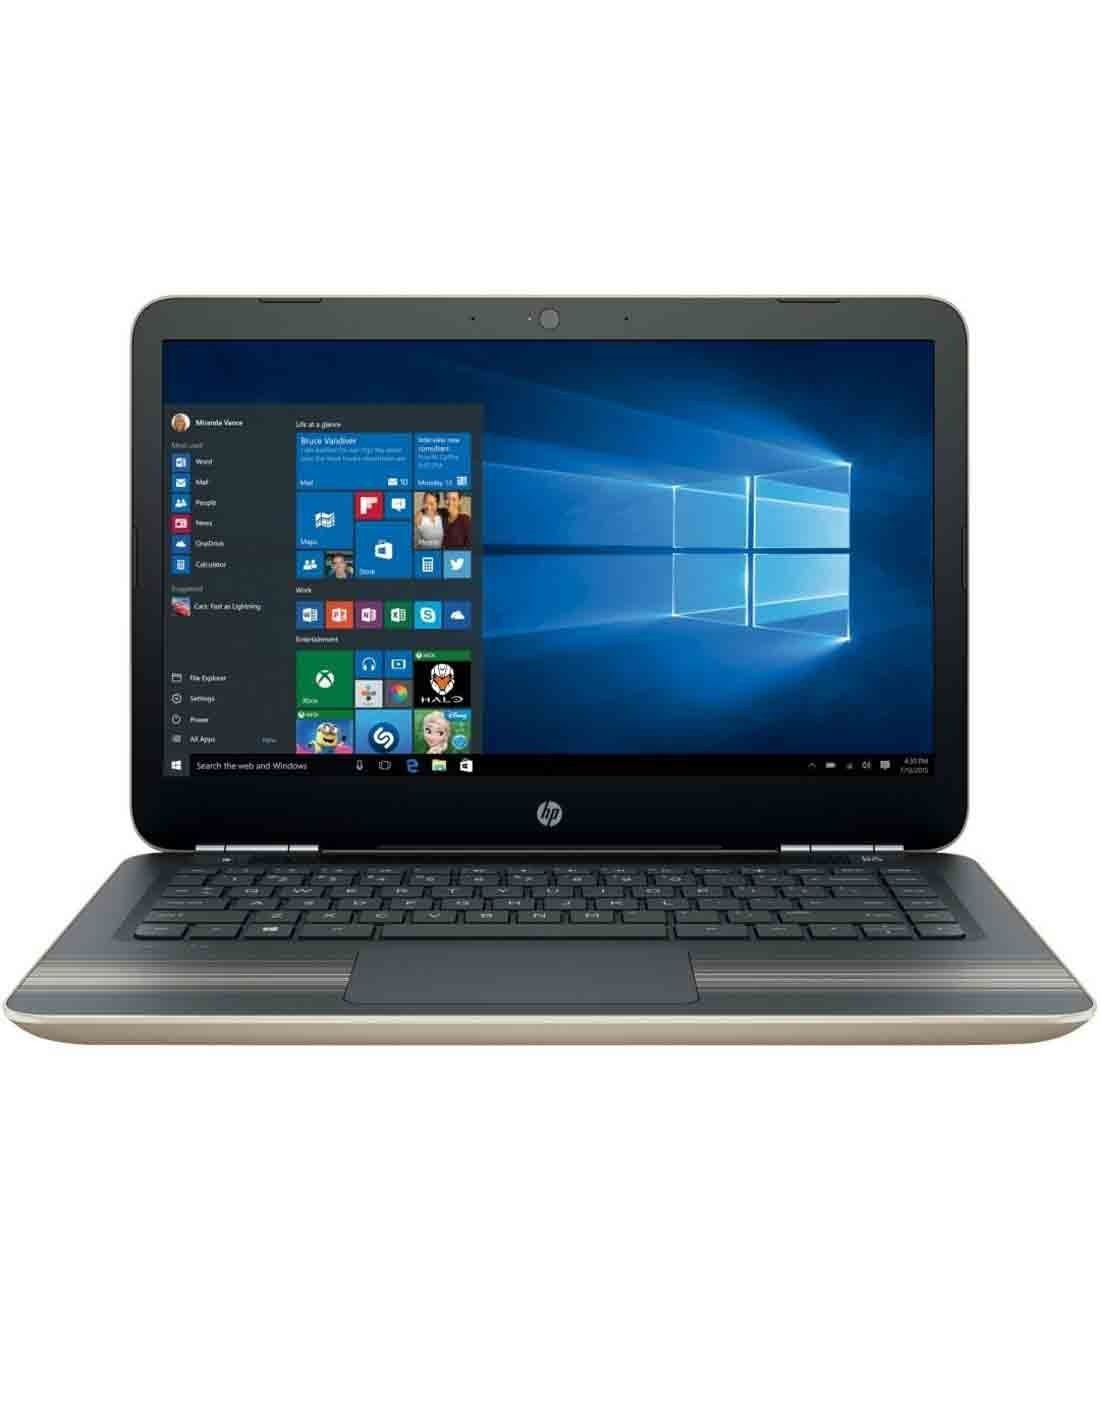 Buy HP Pavilion 14-al106ne at a Cheap Prince in Dubai Online Shop